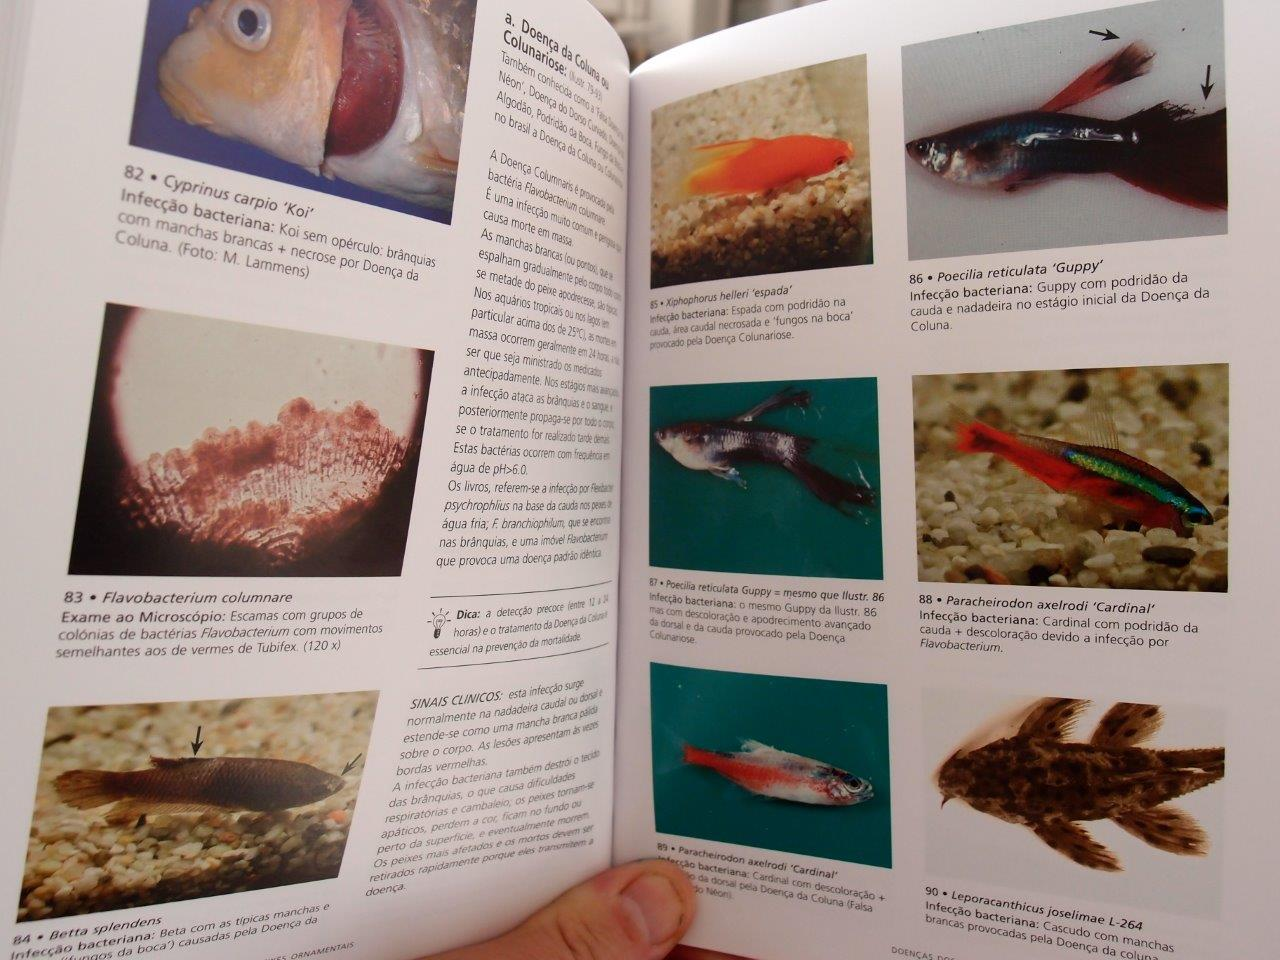 Brazilian book The Practical guide to fish diseases opened